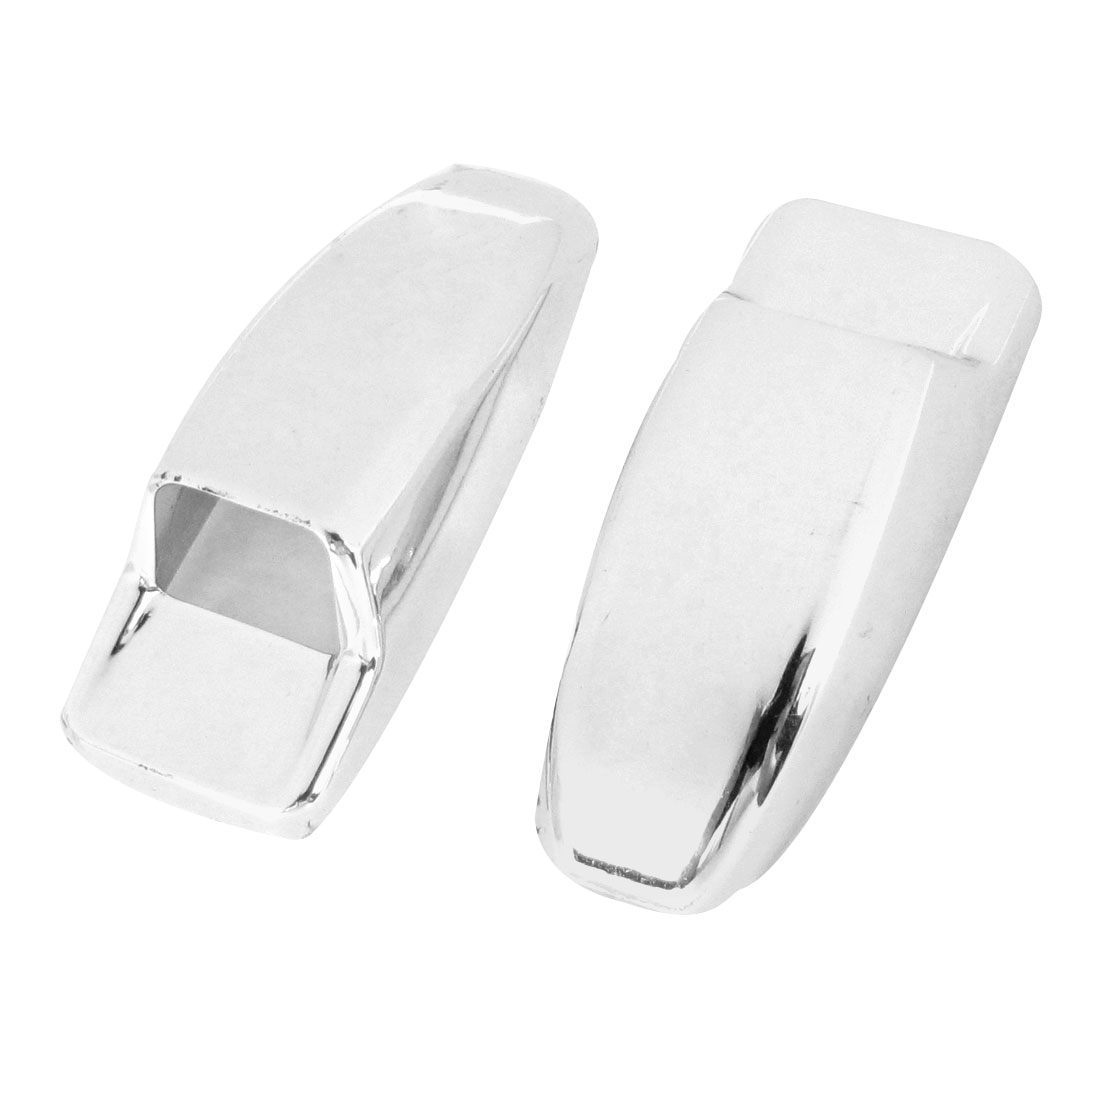 2 Pcs Van Truck Car Windshield Washer Nozzle Cover Silver Tone